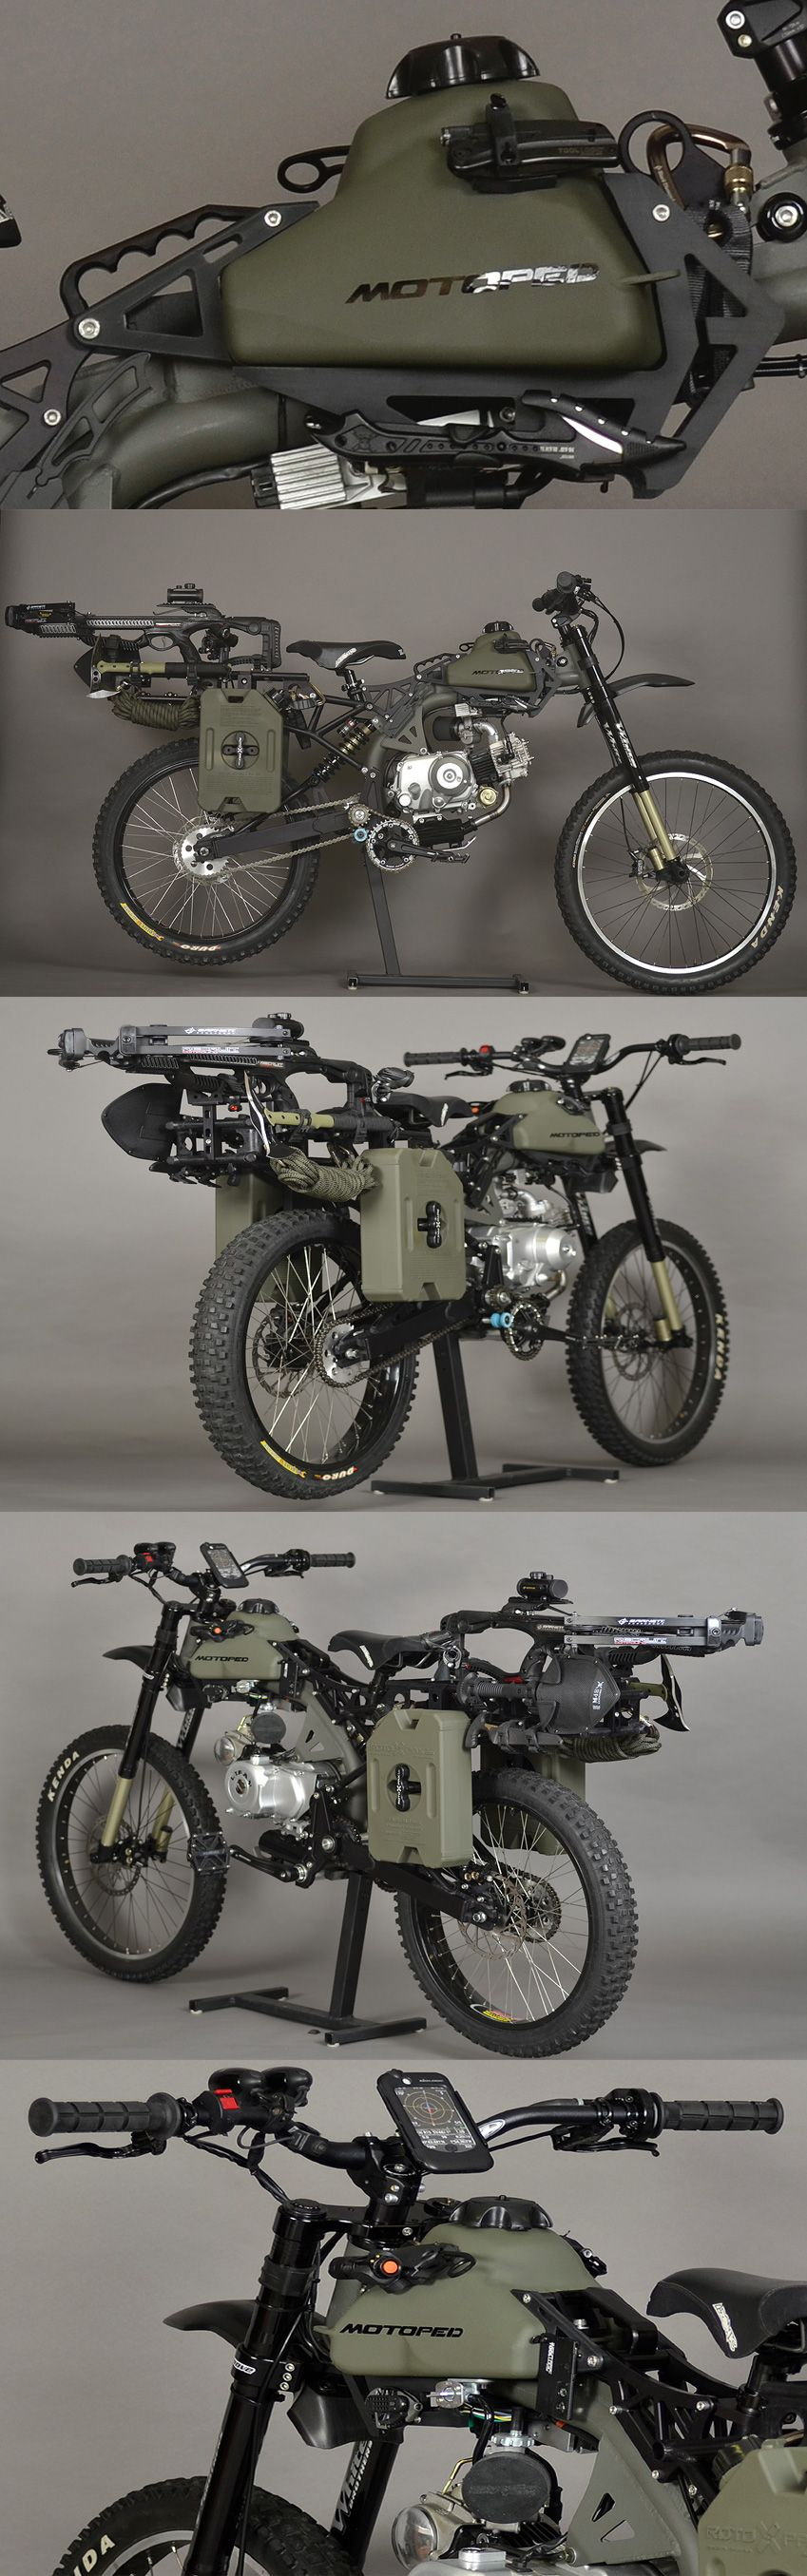 Motopeds Survival Bike Is The Ultimate In Pedal Power Adventuring Penta Marine Engine Parts Further Ducati Diagram Besides 50cc